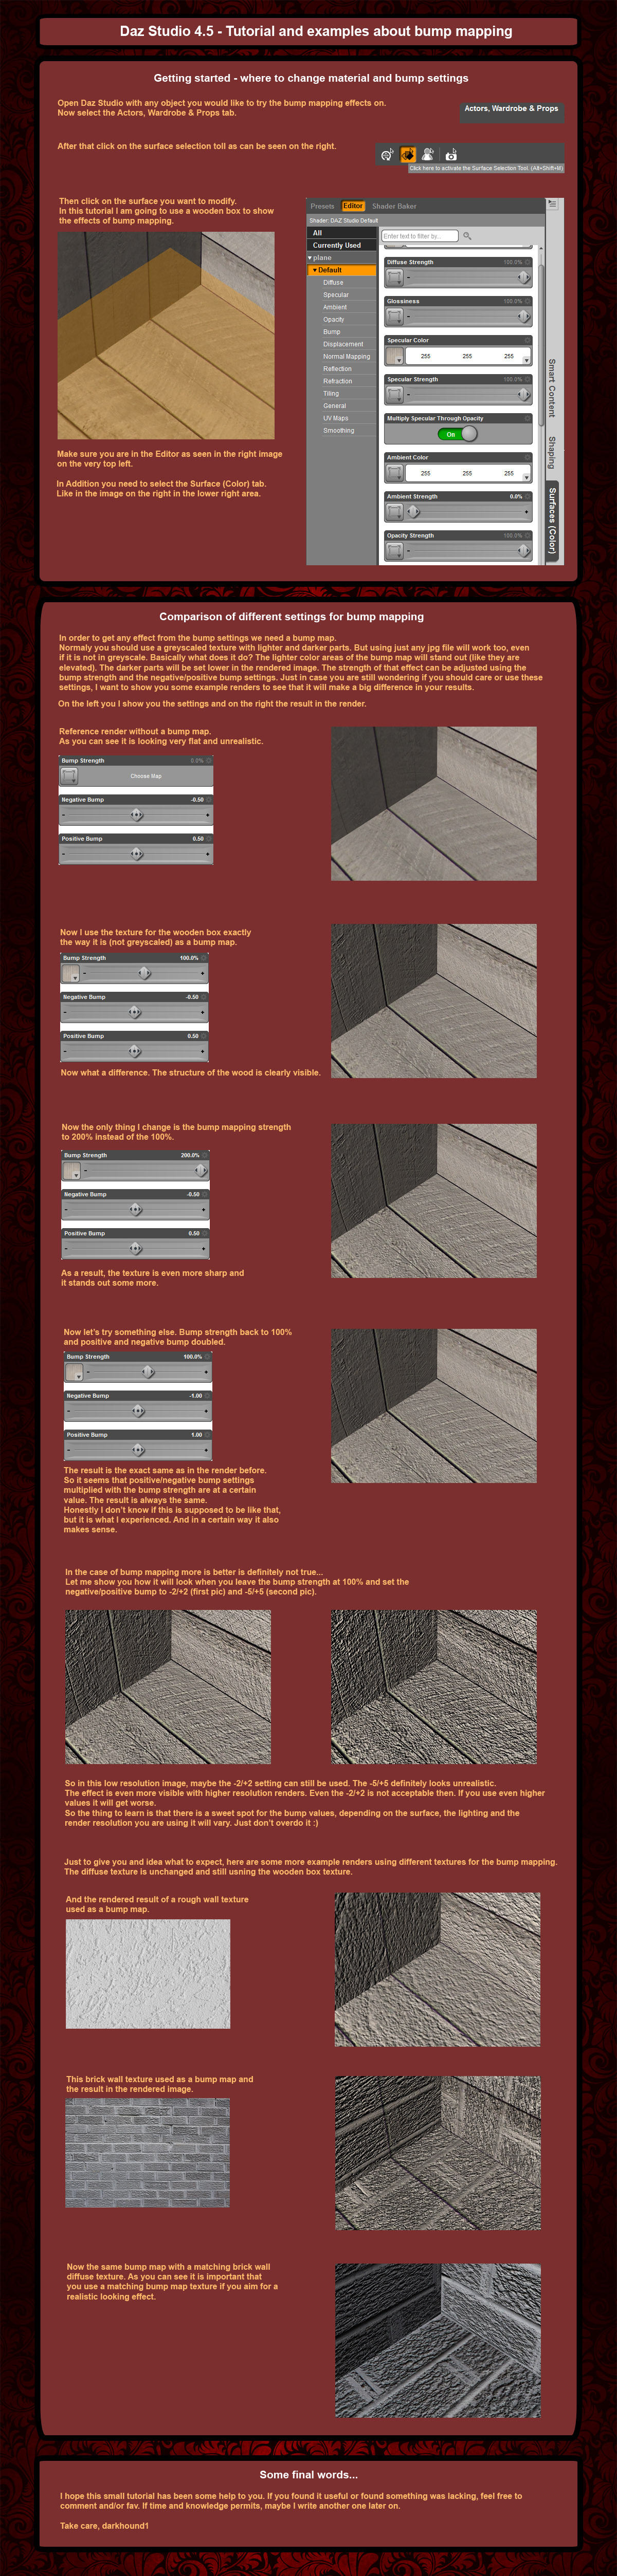 Daz Studio 4.5 small tutorial about bump mapping